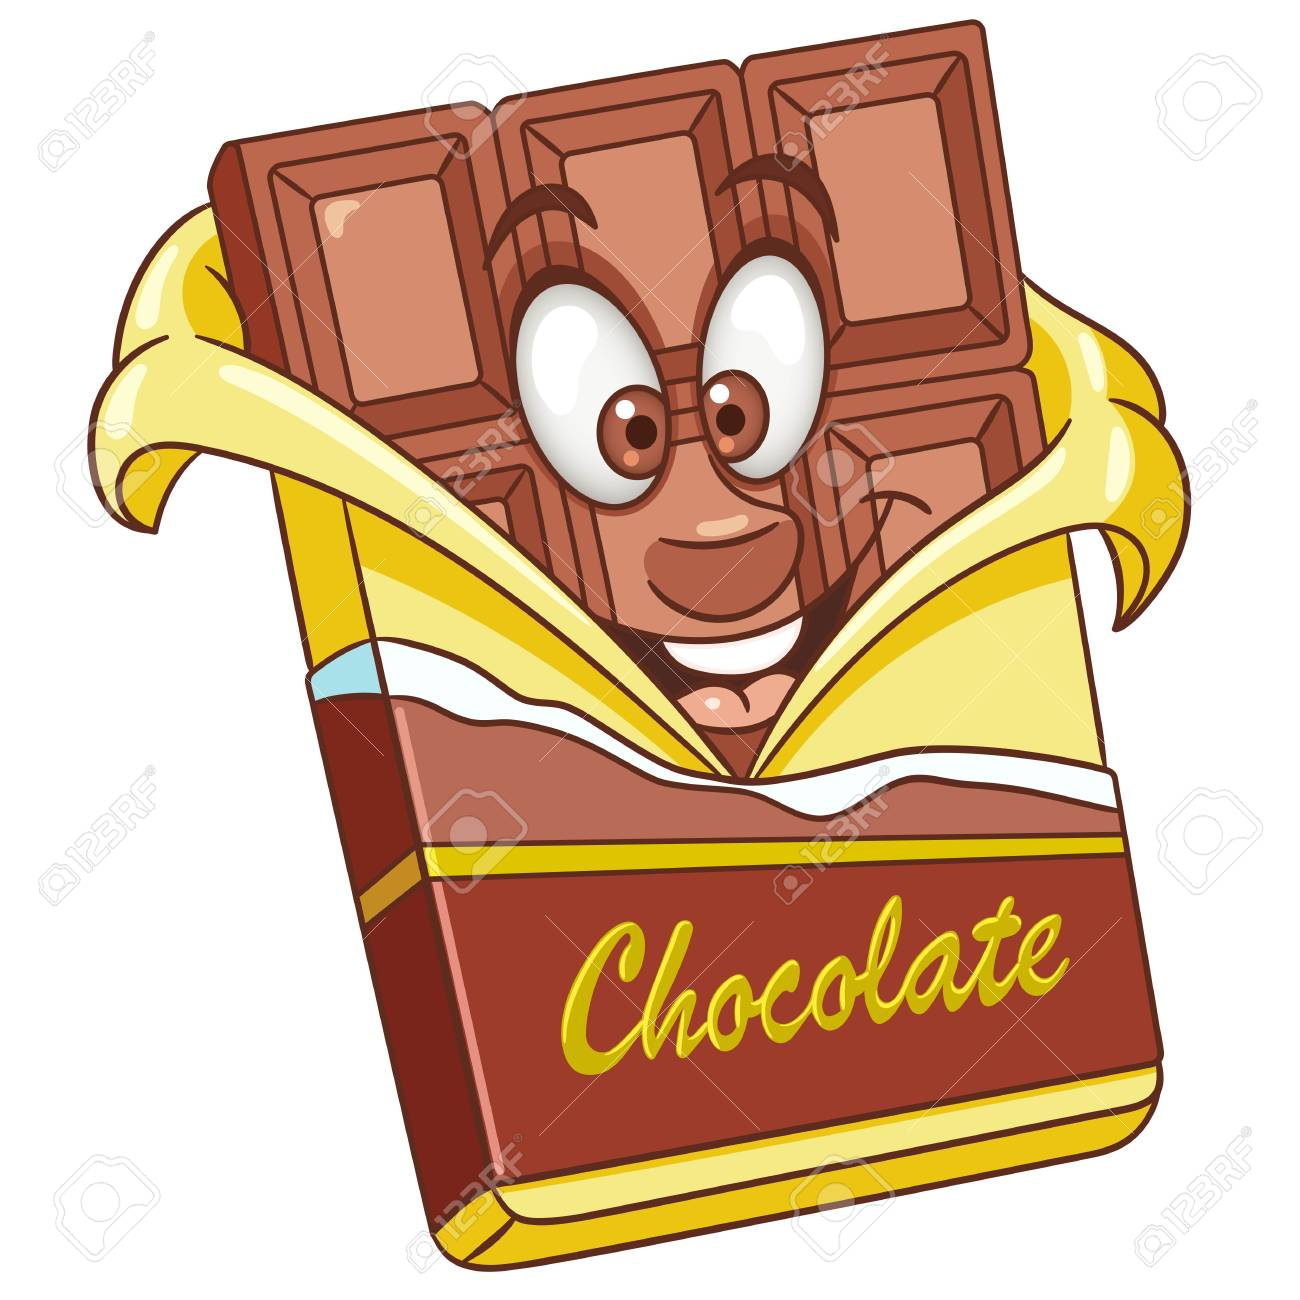 Chocolate bar. Sweet candy food concept. Happy cartoon design..